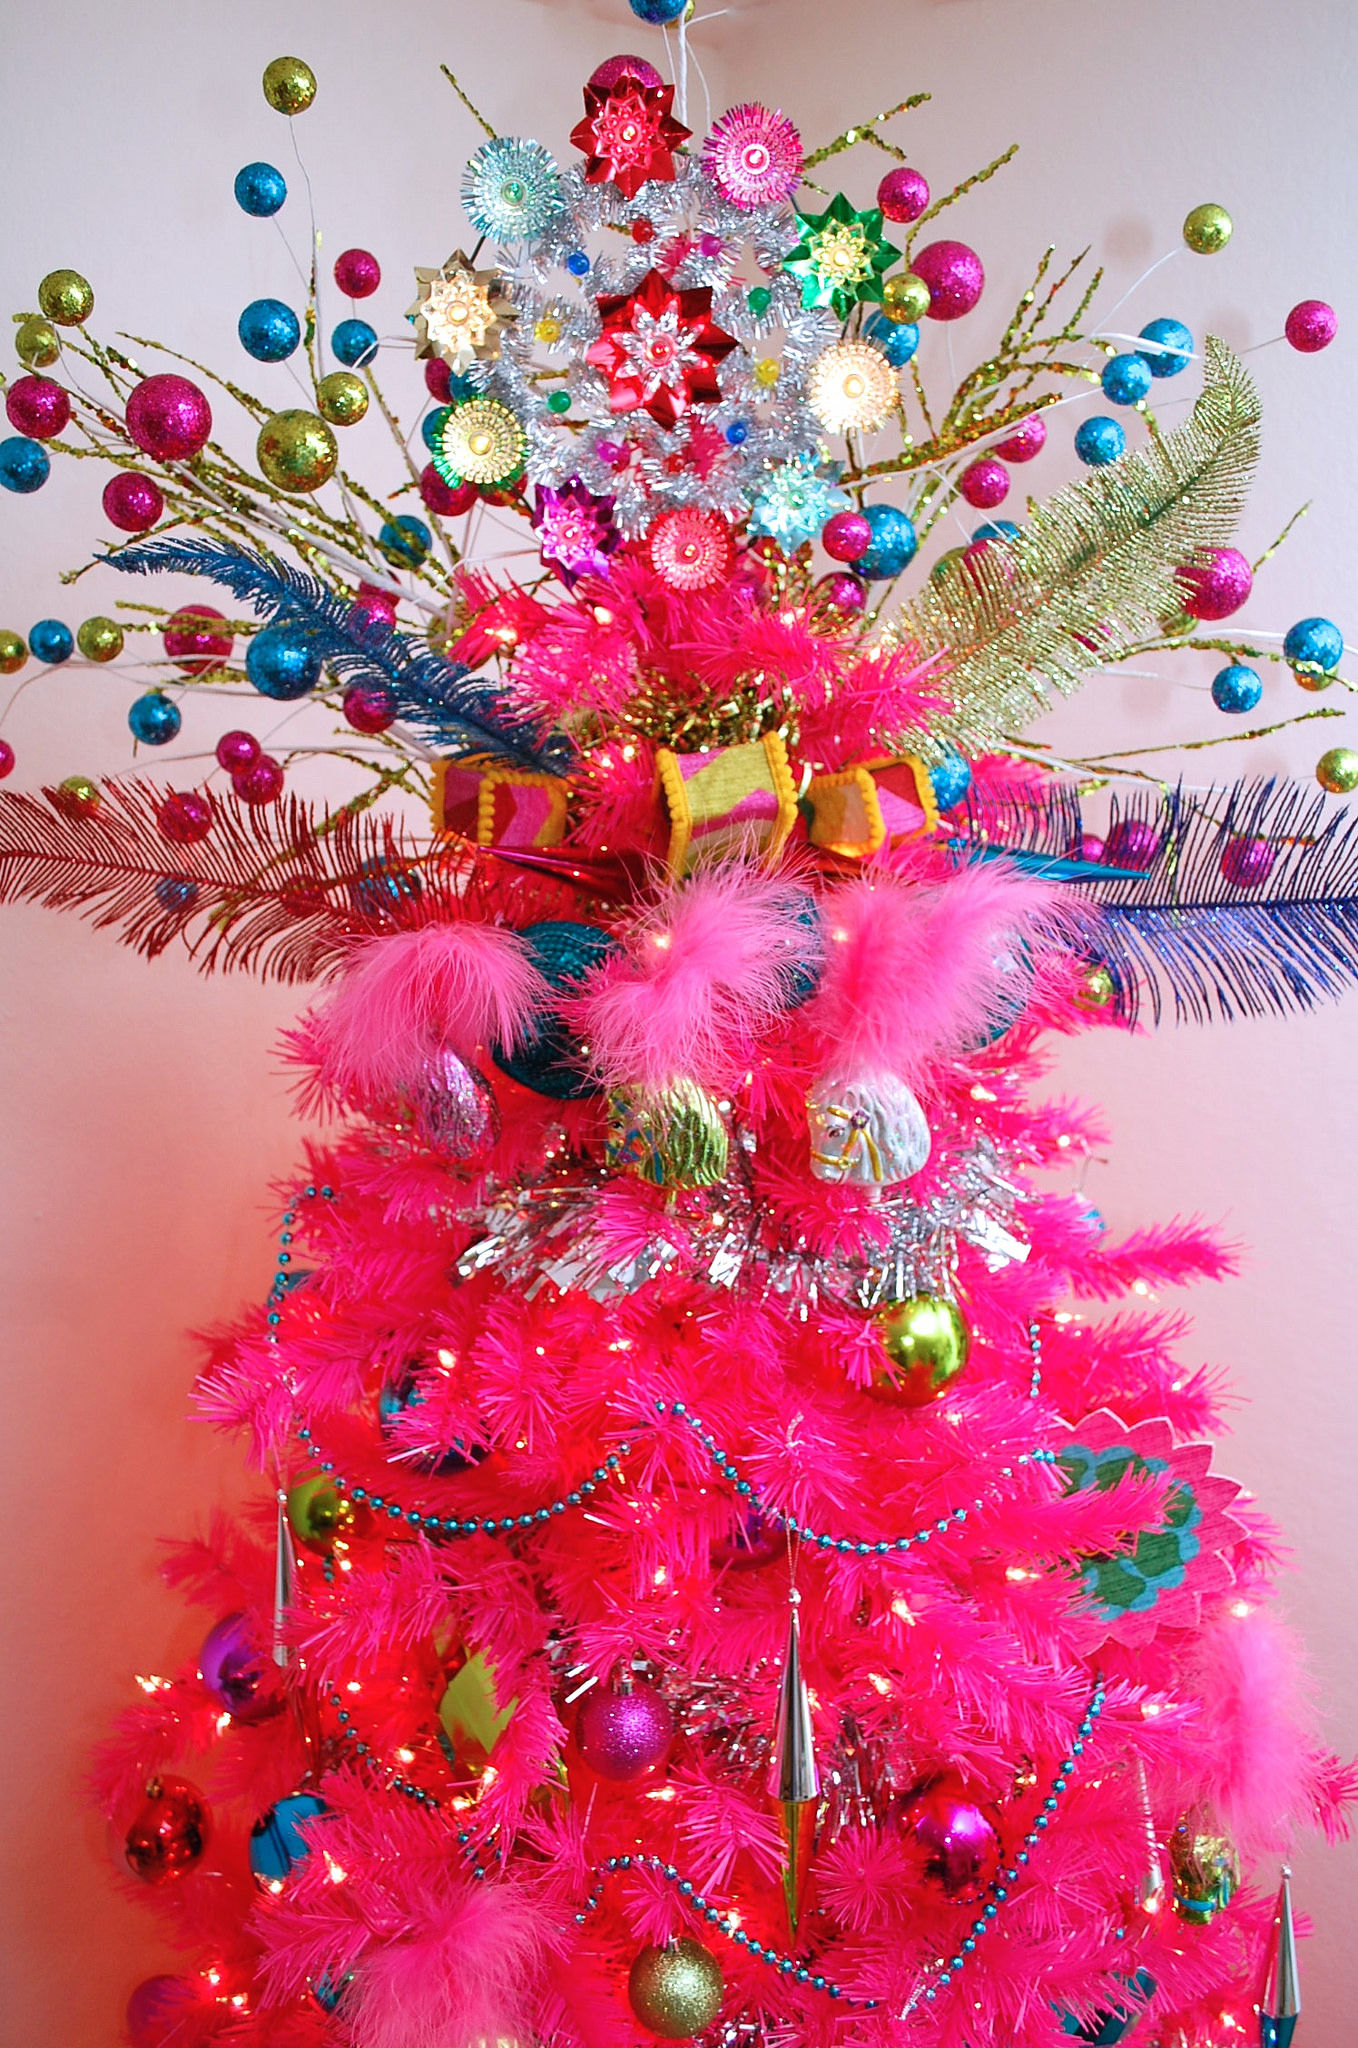 Neon Quotes Wallpaper Hot Pink Christmas Tree With Colorful Tree Topper Pictures